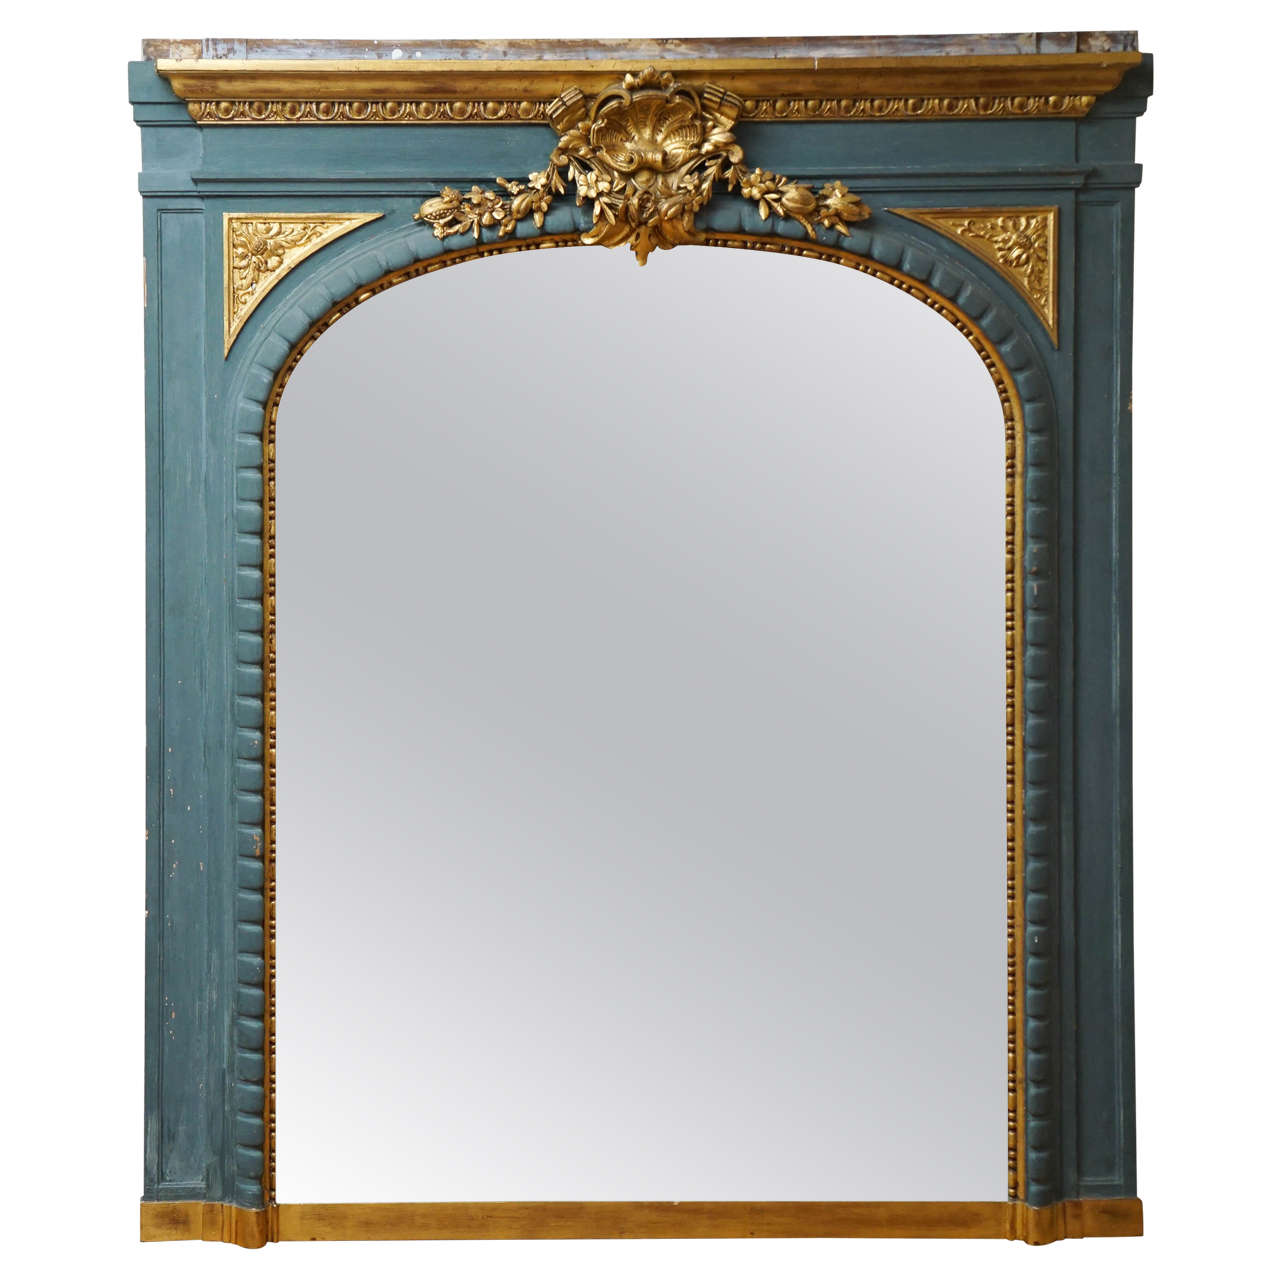 Neoclassical mantel mirror in blue and gold for sale at for Fireplace mirrors